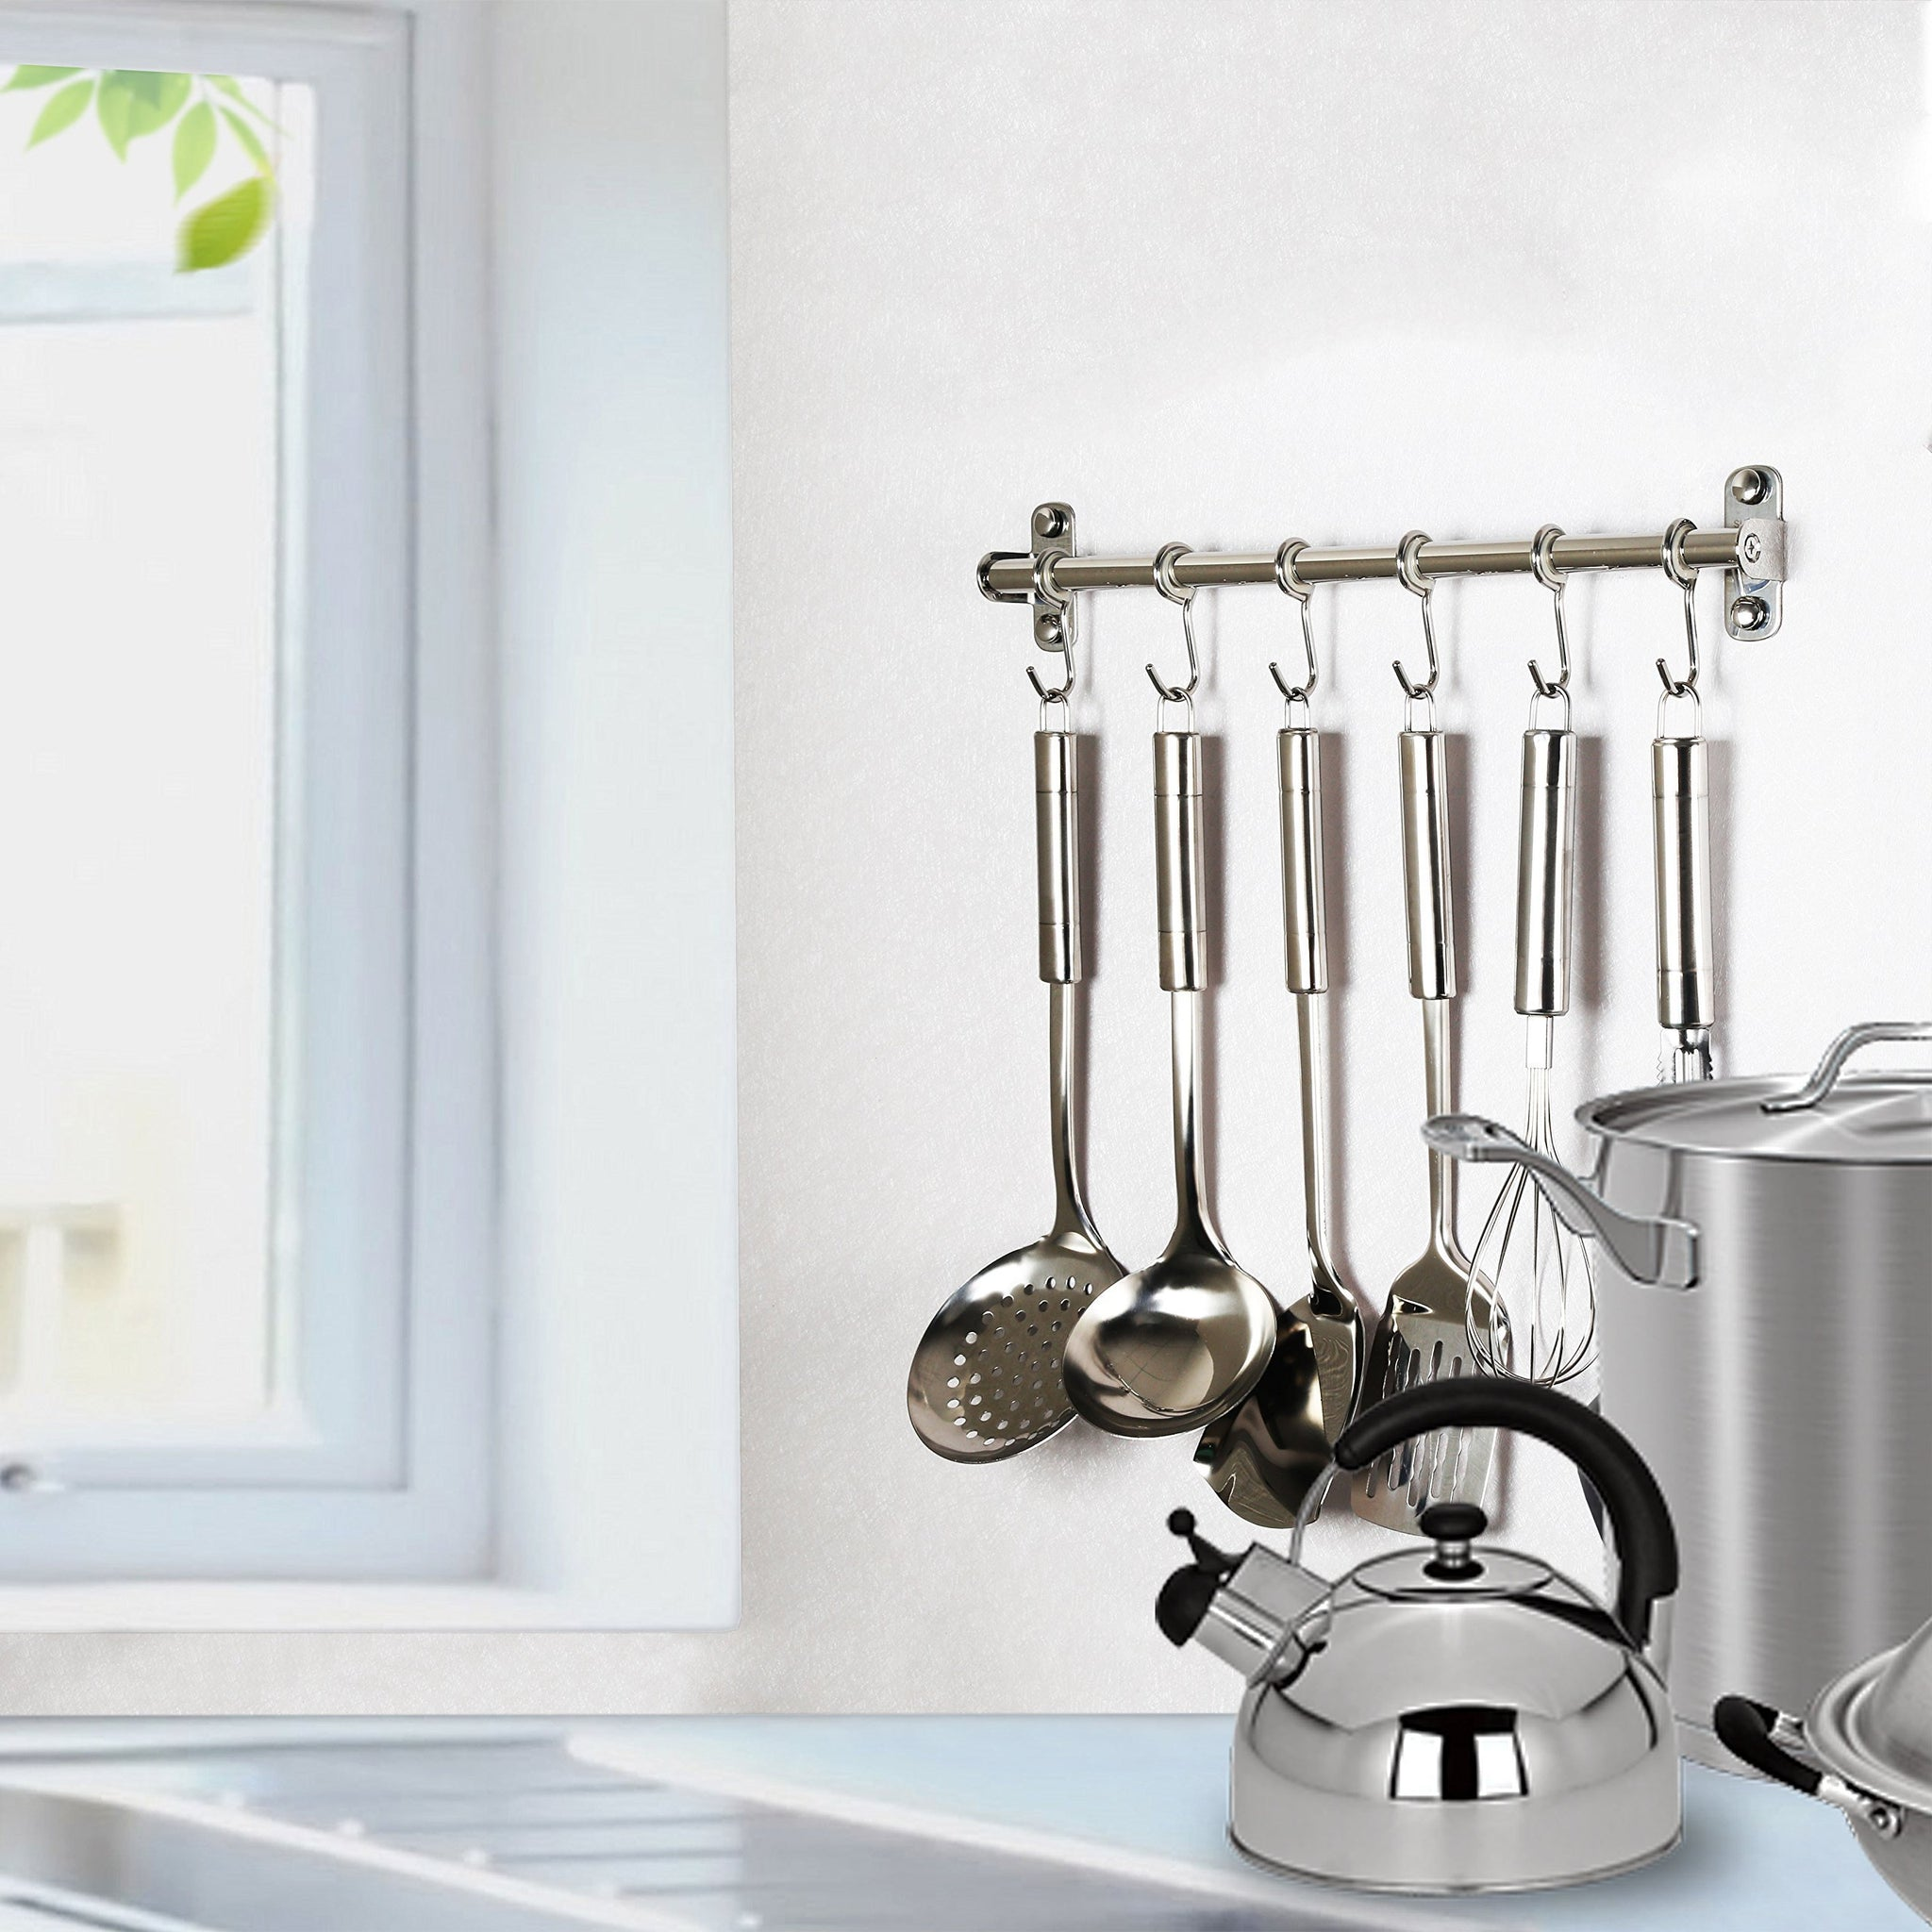 Spoon Solid Stainless Steel Hanging Rack Rail with 14 Utensil Removable S Hooks for Towel Pot Pan Loofah WEBI Kitchen Sliding Hooks Wall Mounted Bathrobe